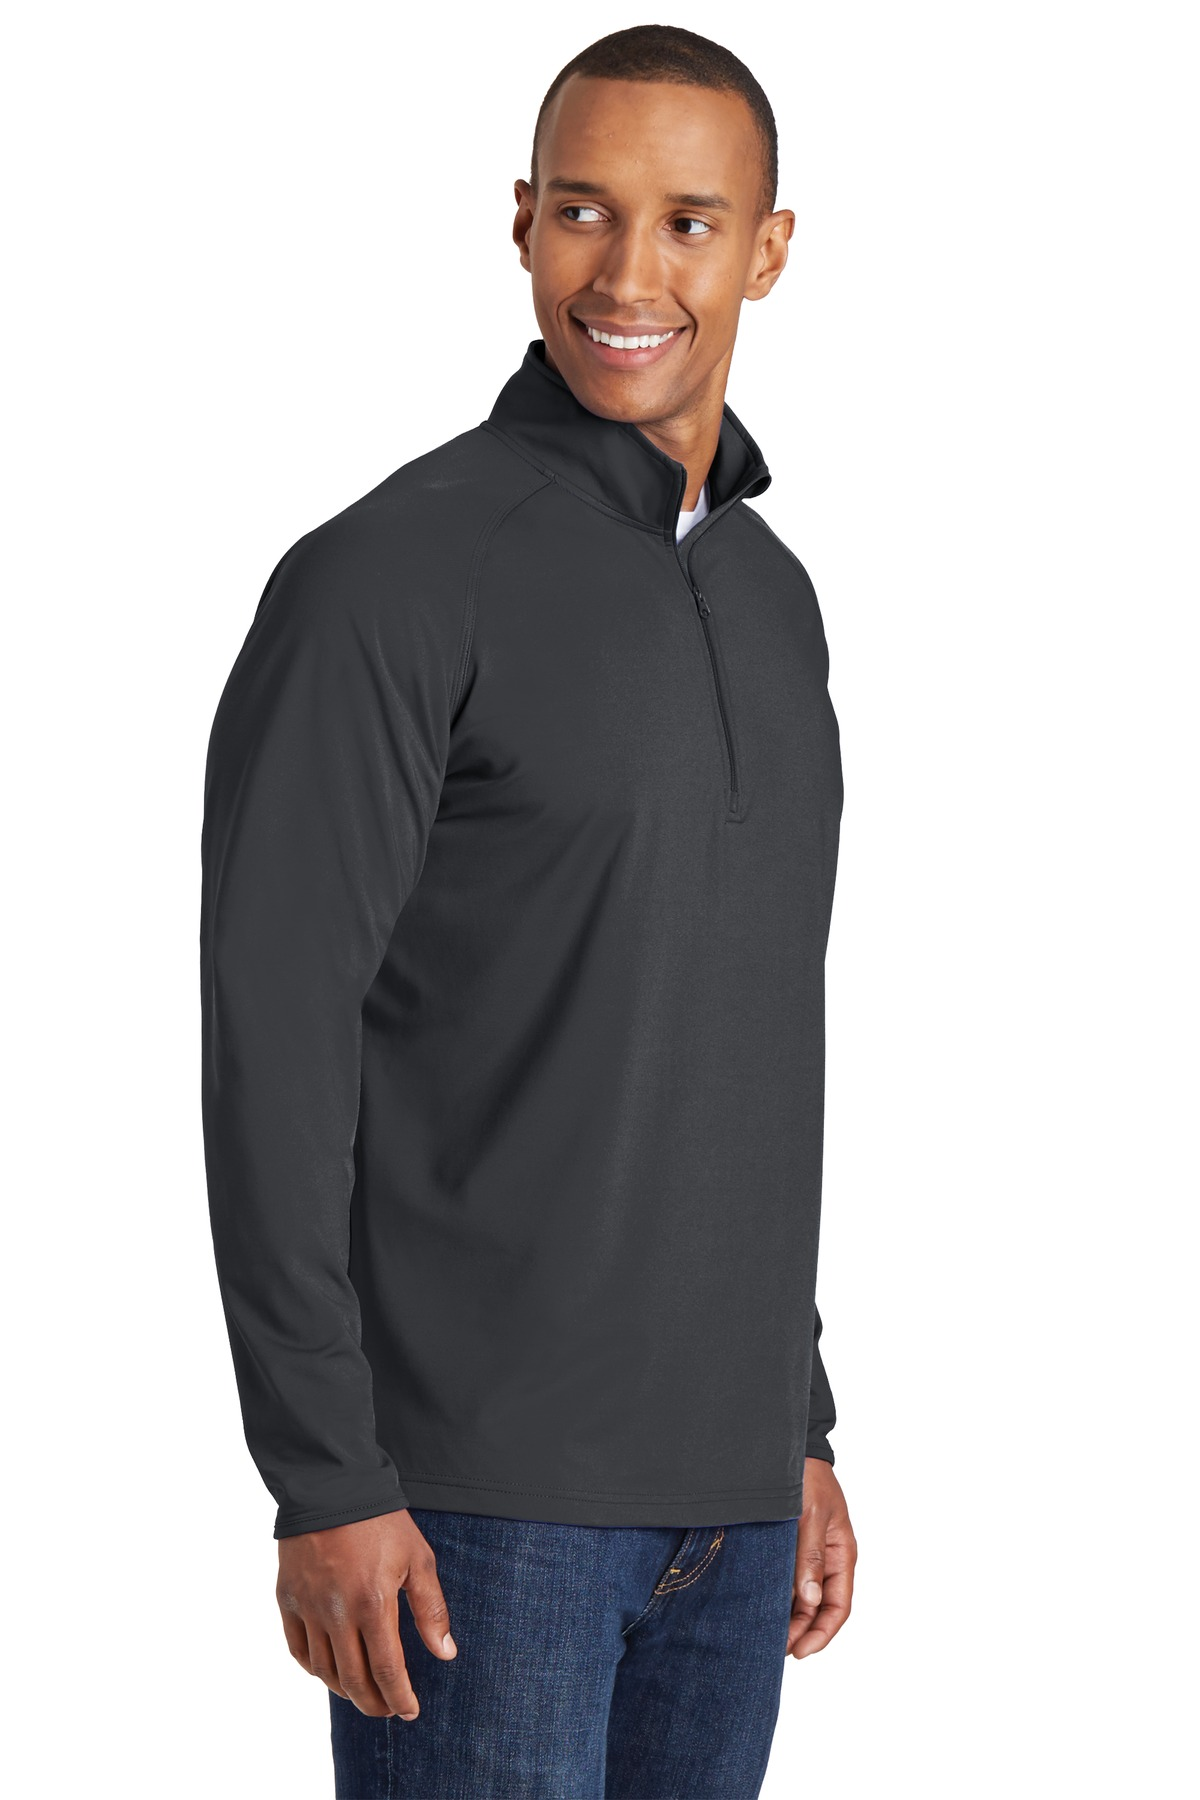 Mens Sport Stretch 1/2 Zip Pullover - RCG1130